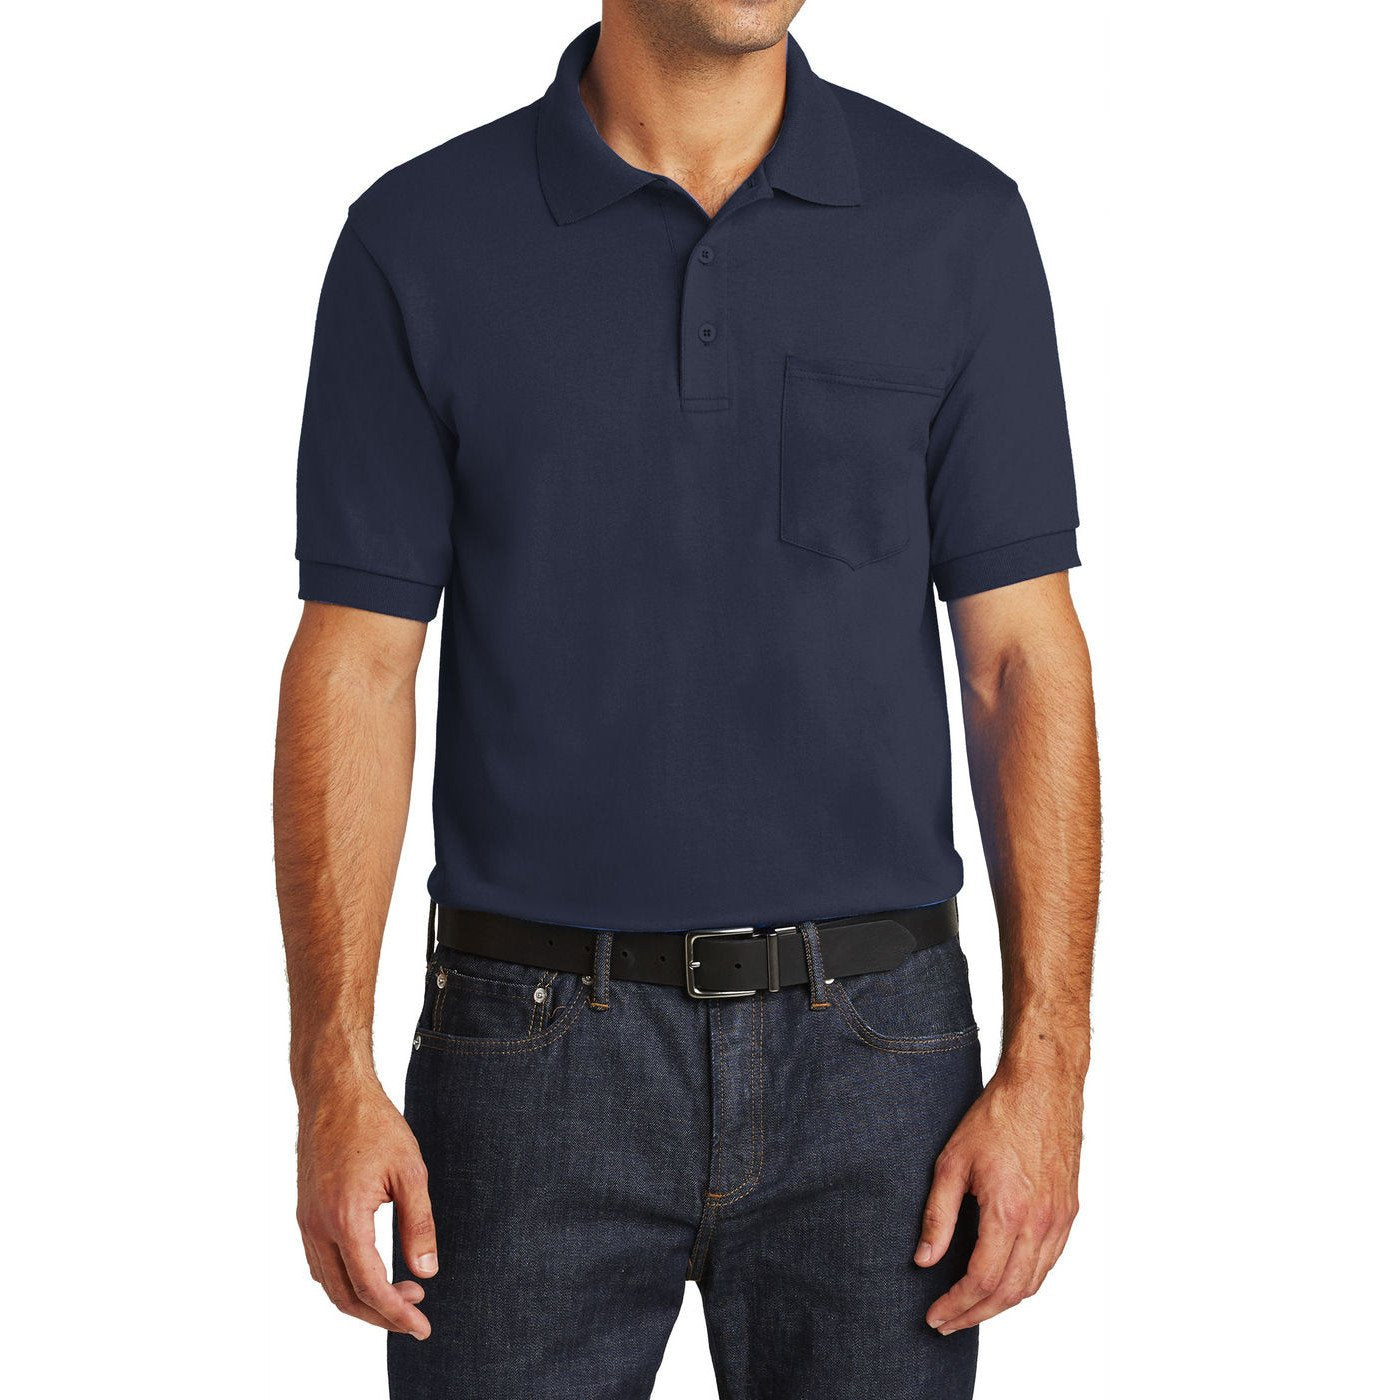 Mafoose Men's Core Blend Jersey Knit Pocket Polo Shirt Deep Navy